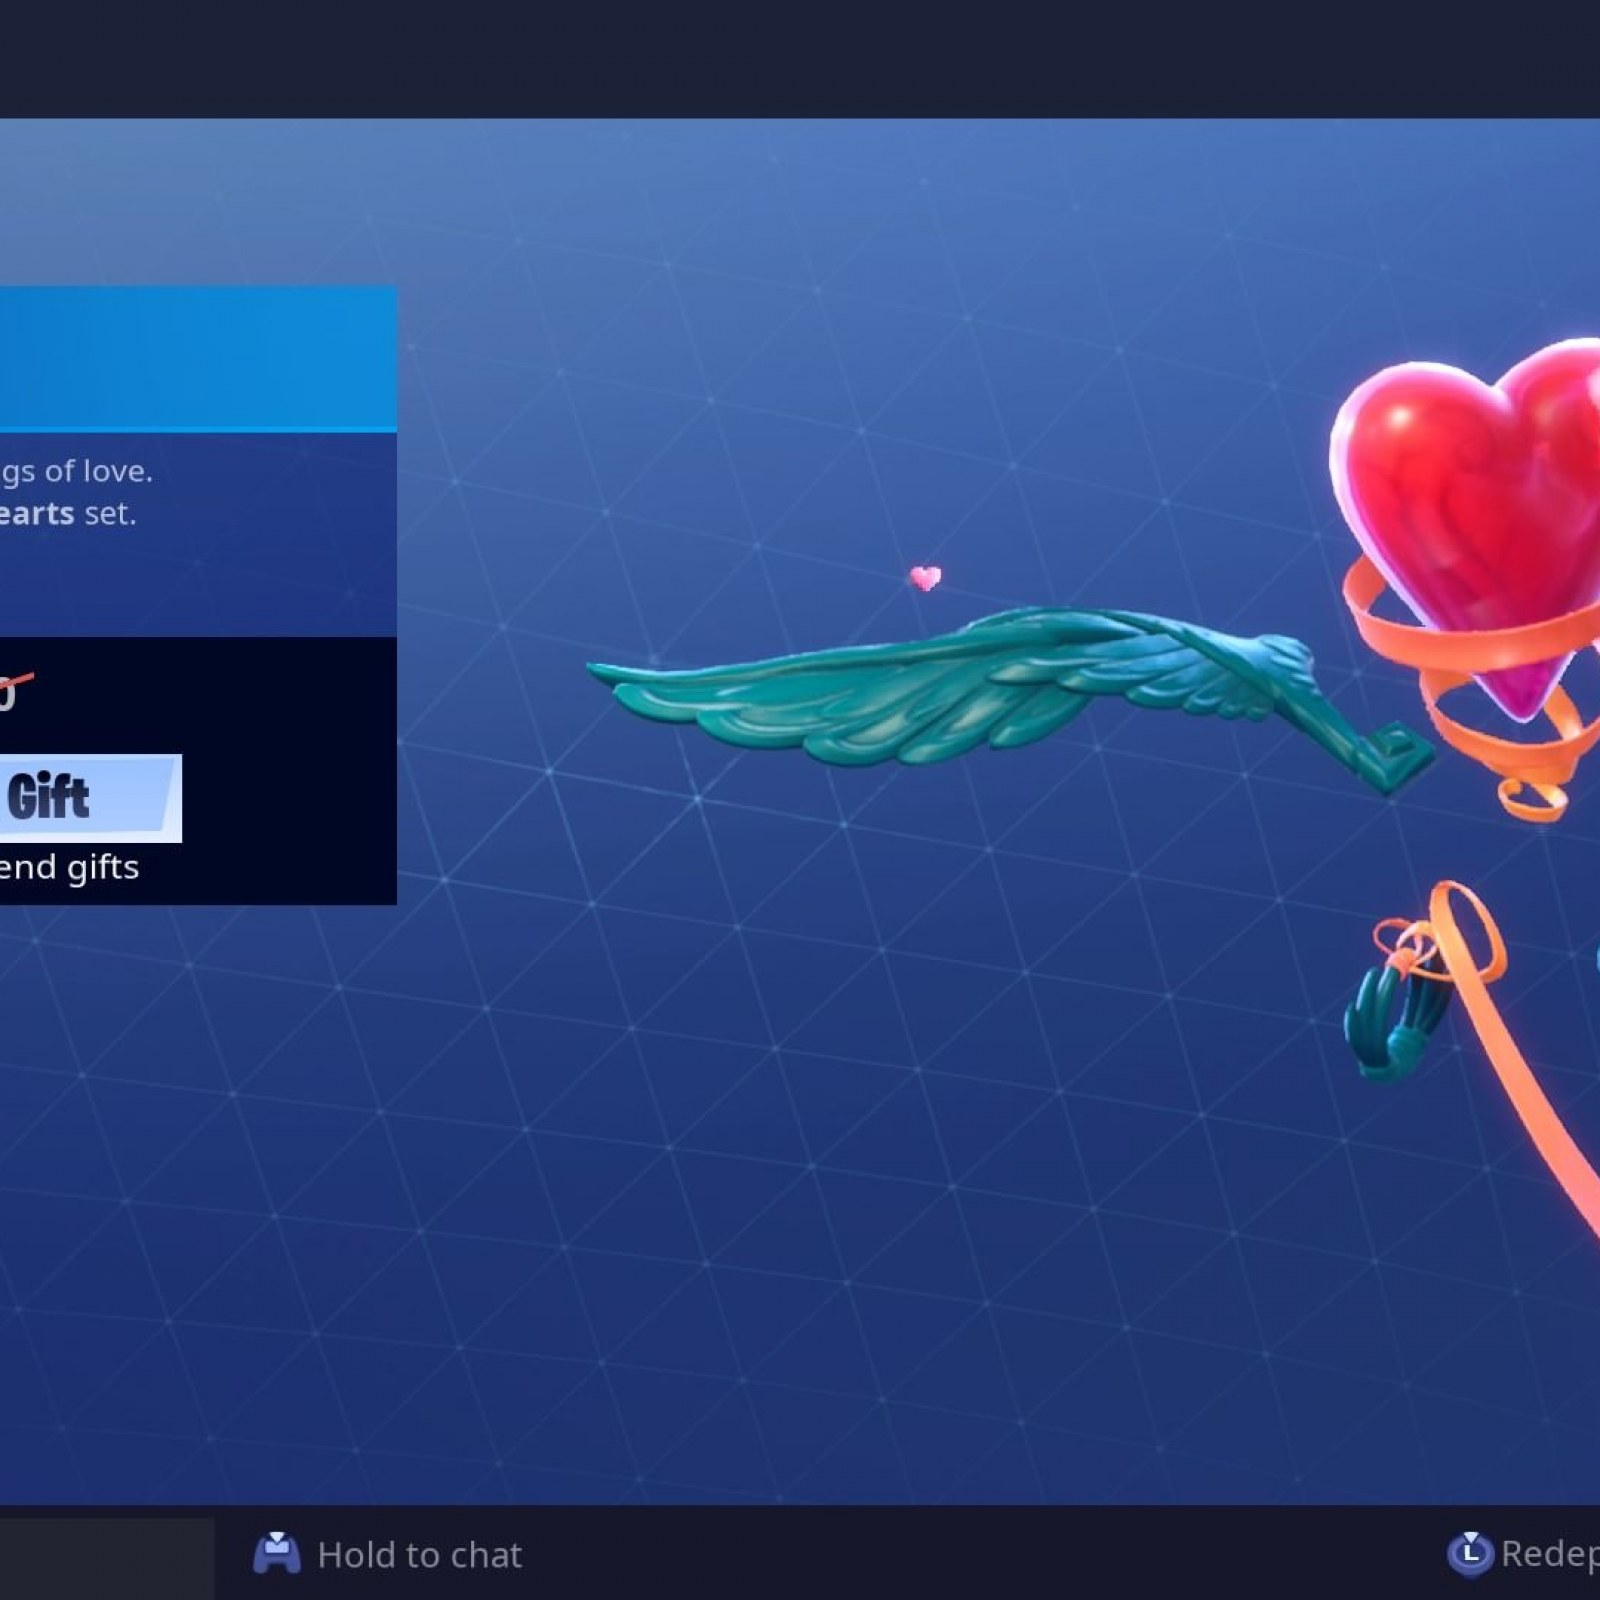 Fortnite' Heartspun Glider Guide - How to Enable 2FA & Gift a Free